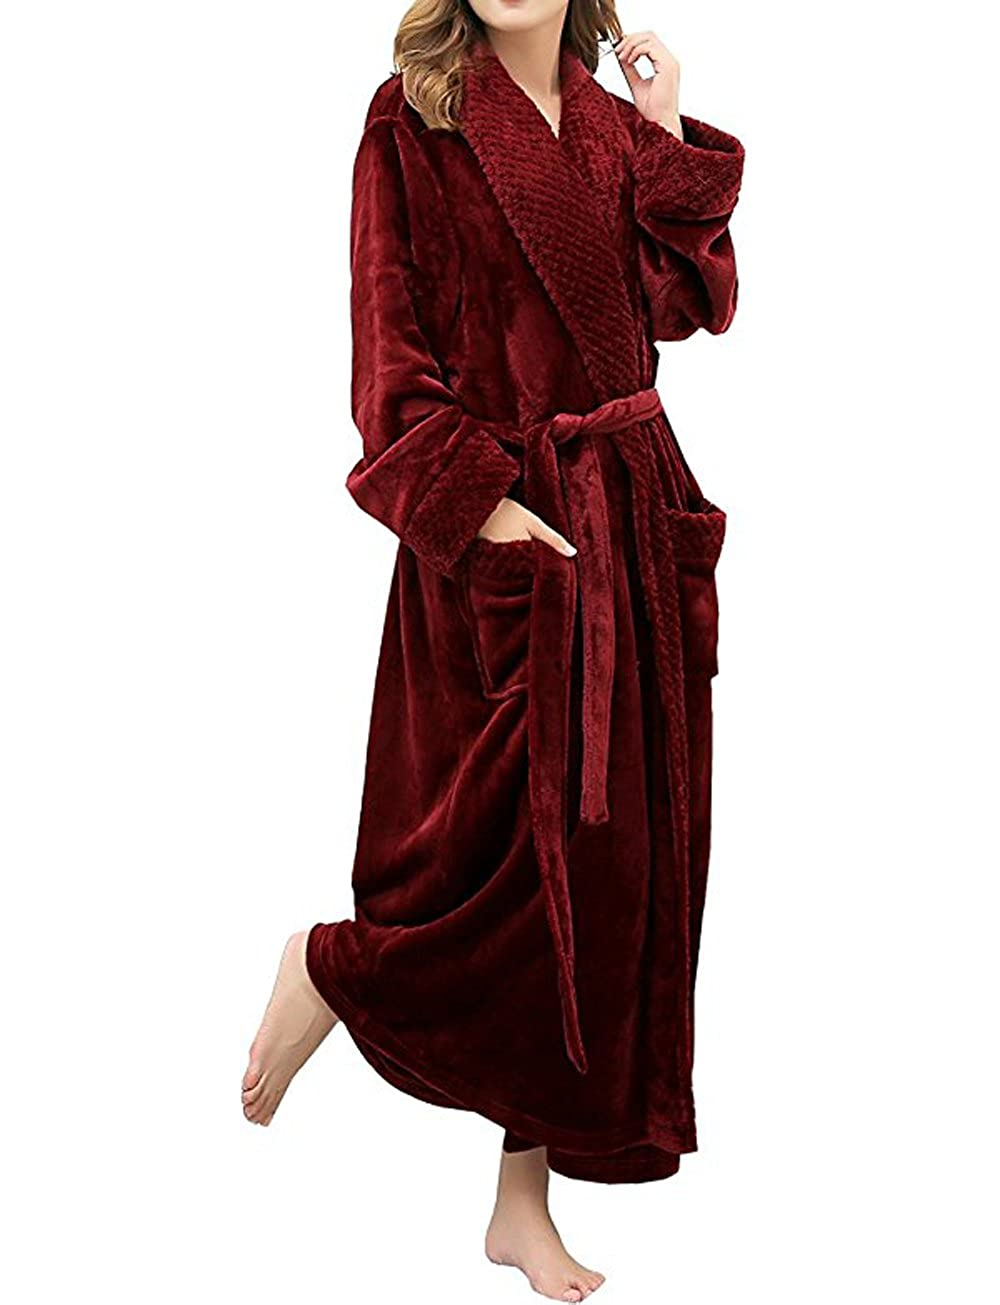 DSNOW Ladies Luxury Full Length Dressing Gown Towelling Bathrobe Fluffy Nightwear